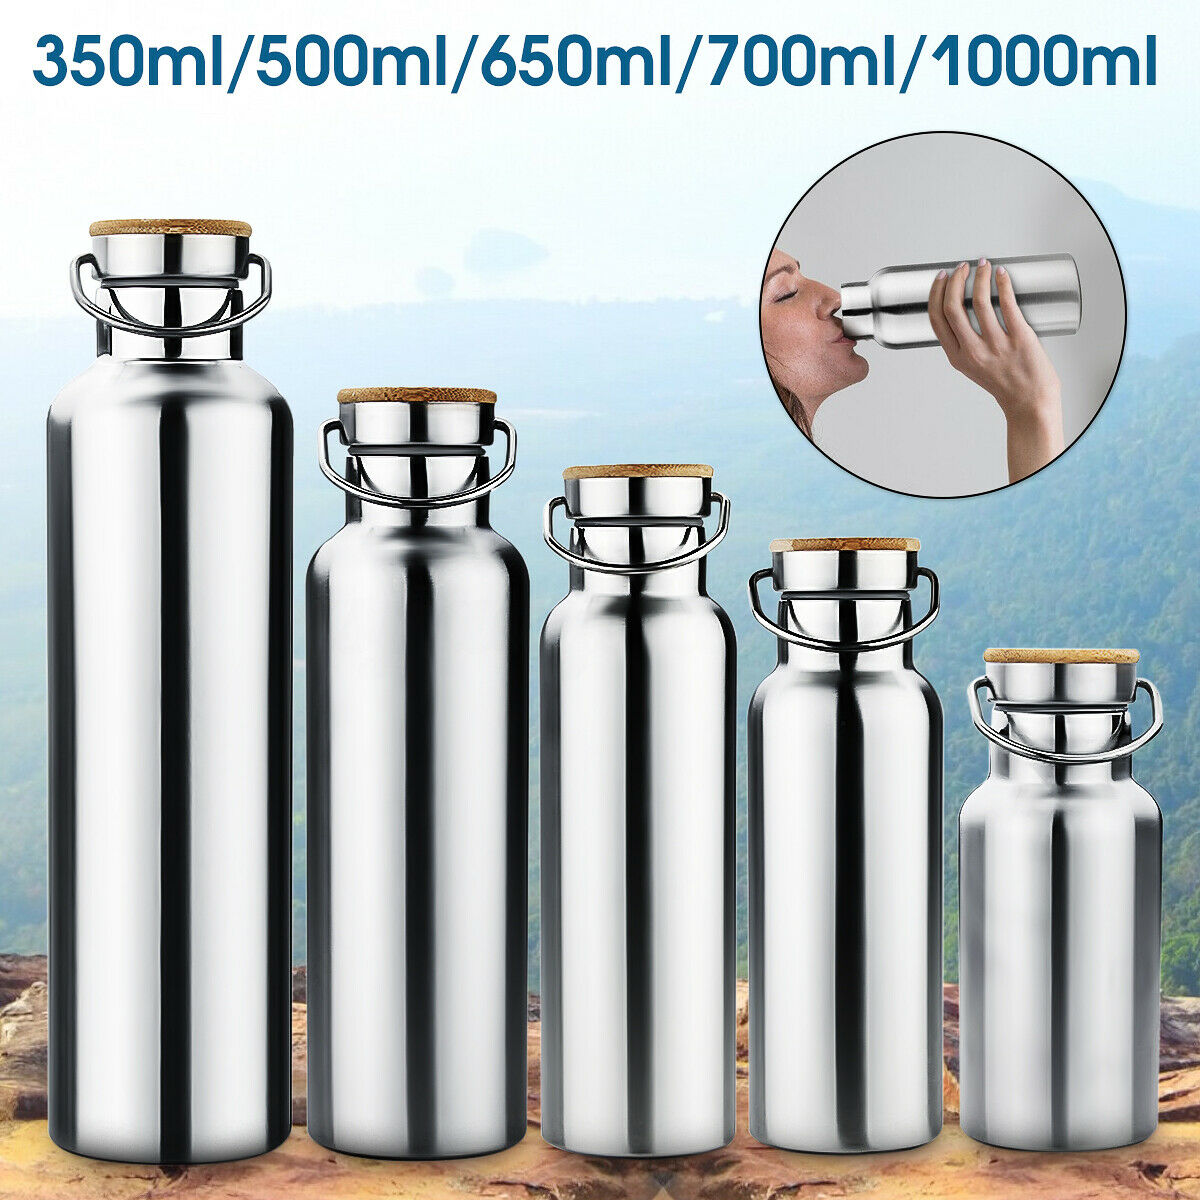 350-1000ml Stainless Steel Vacuum Insulated Water Bottle Double Wall Thermos